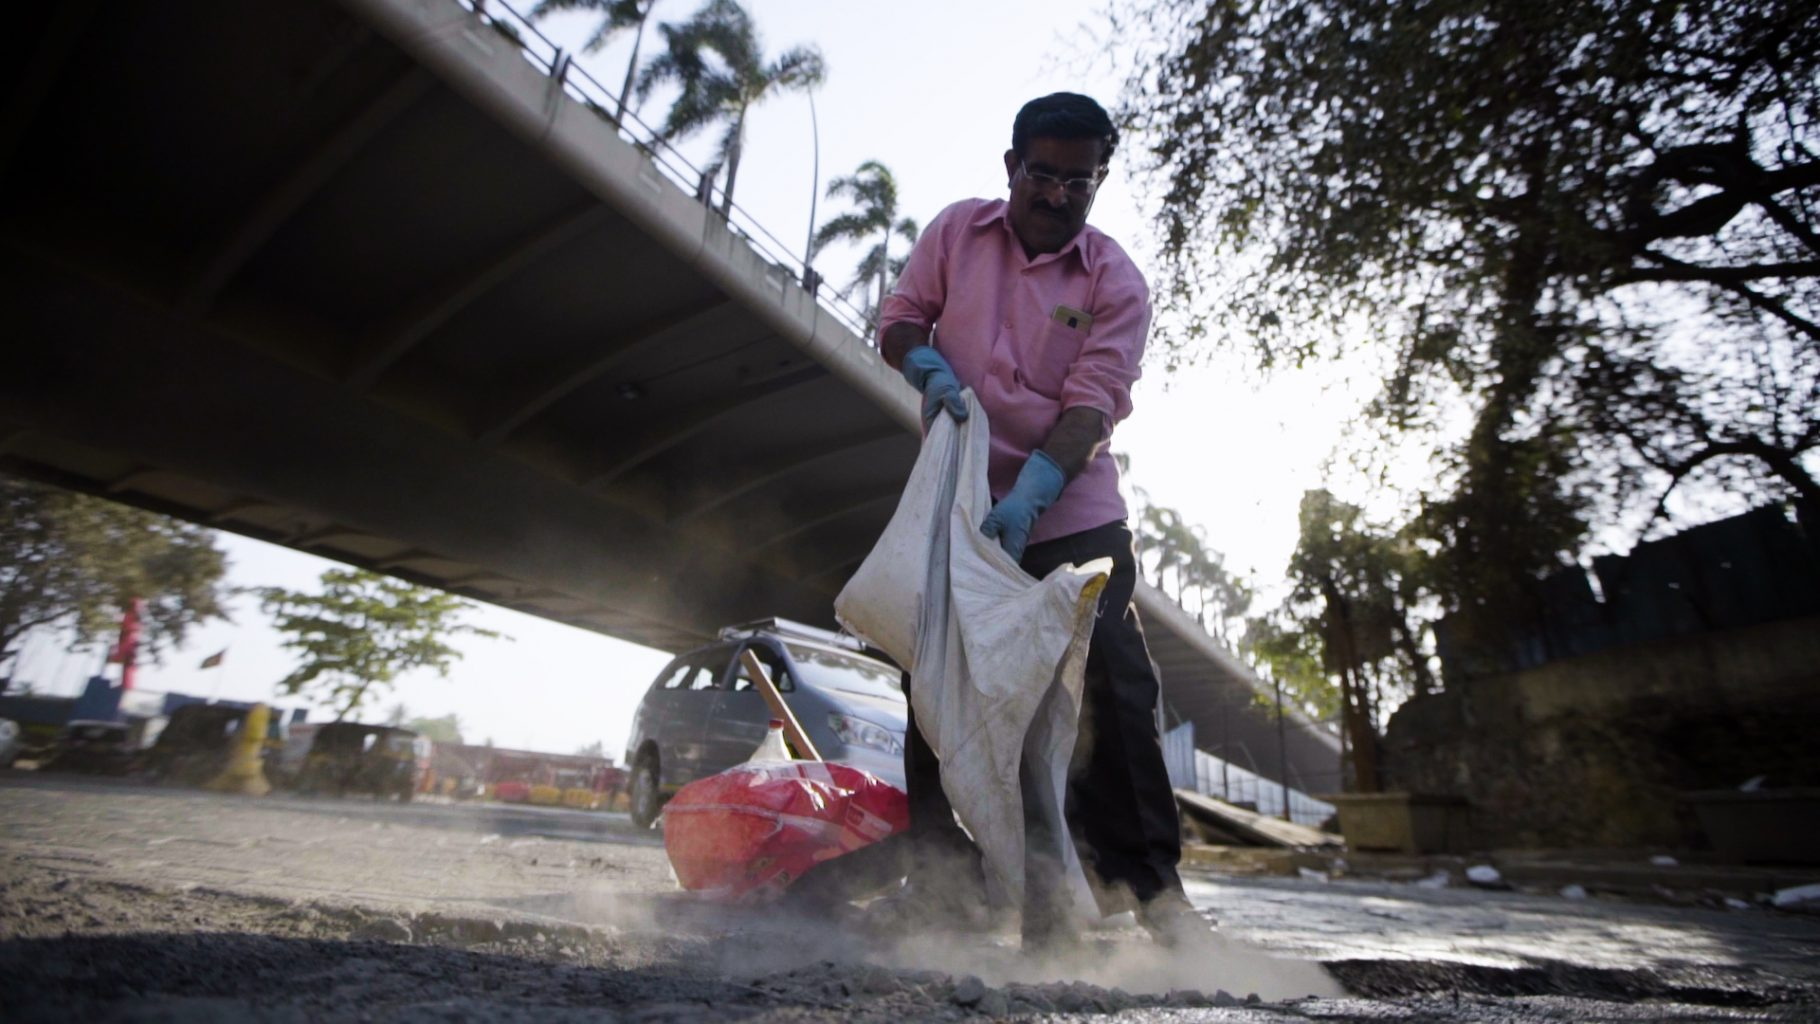 Image: man holding bag, pouring in contents to fill pothole in busy road